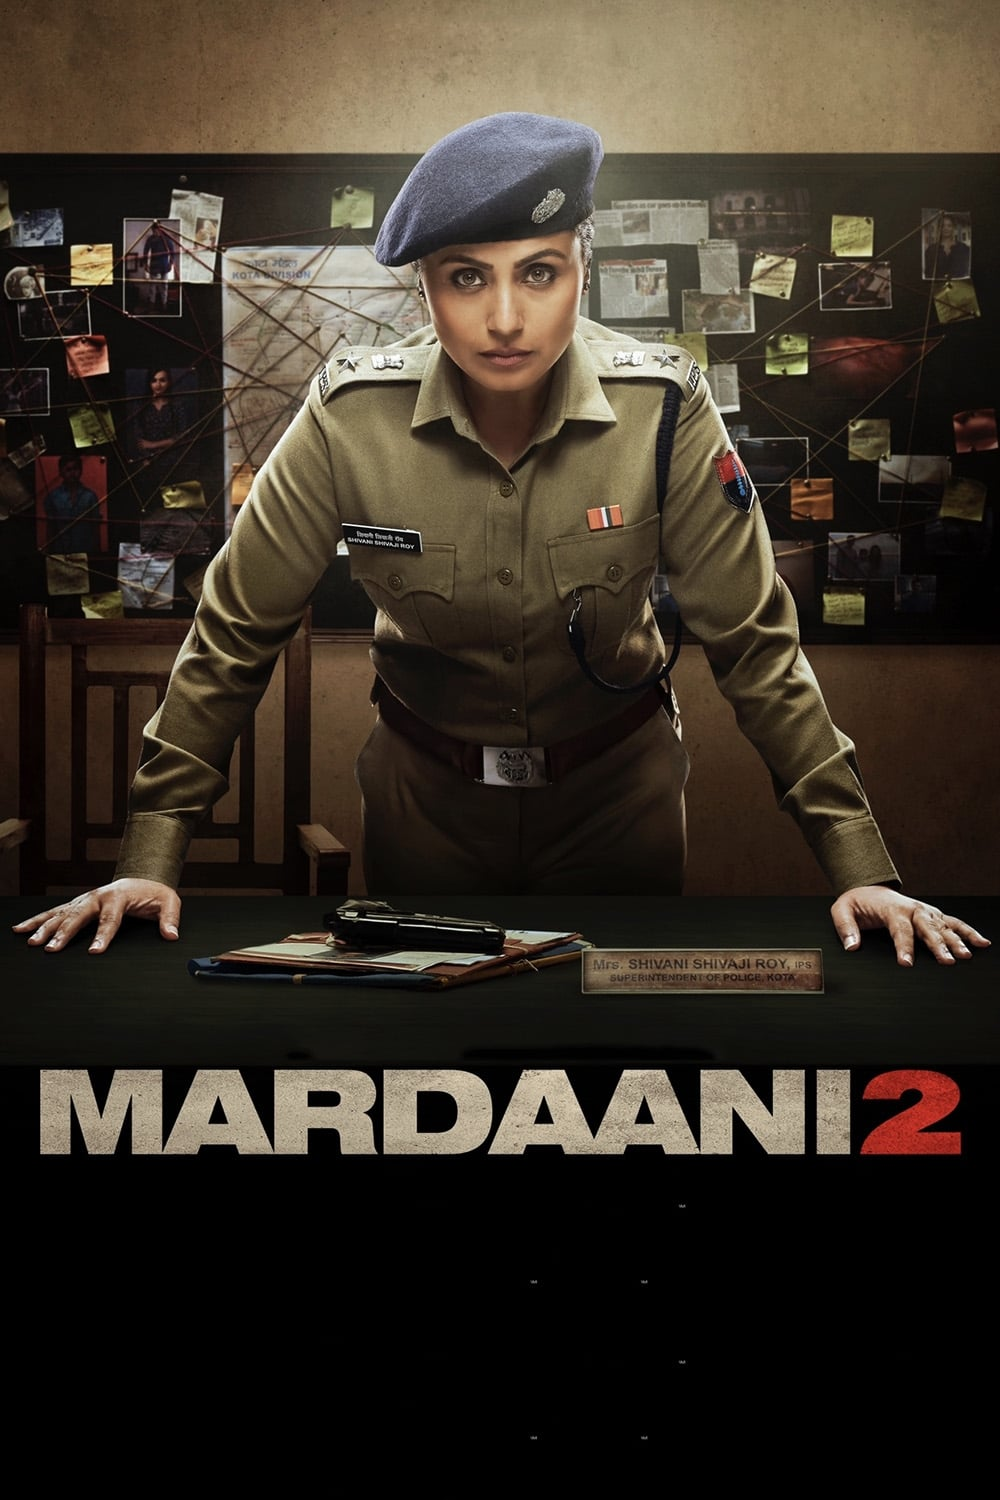 Mardaani 2 2019 BluRay x264 1080p [2.86 GB] 720p [940 MB] 480p [373 MB] [Hindi DD 5.1] | G-Drive